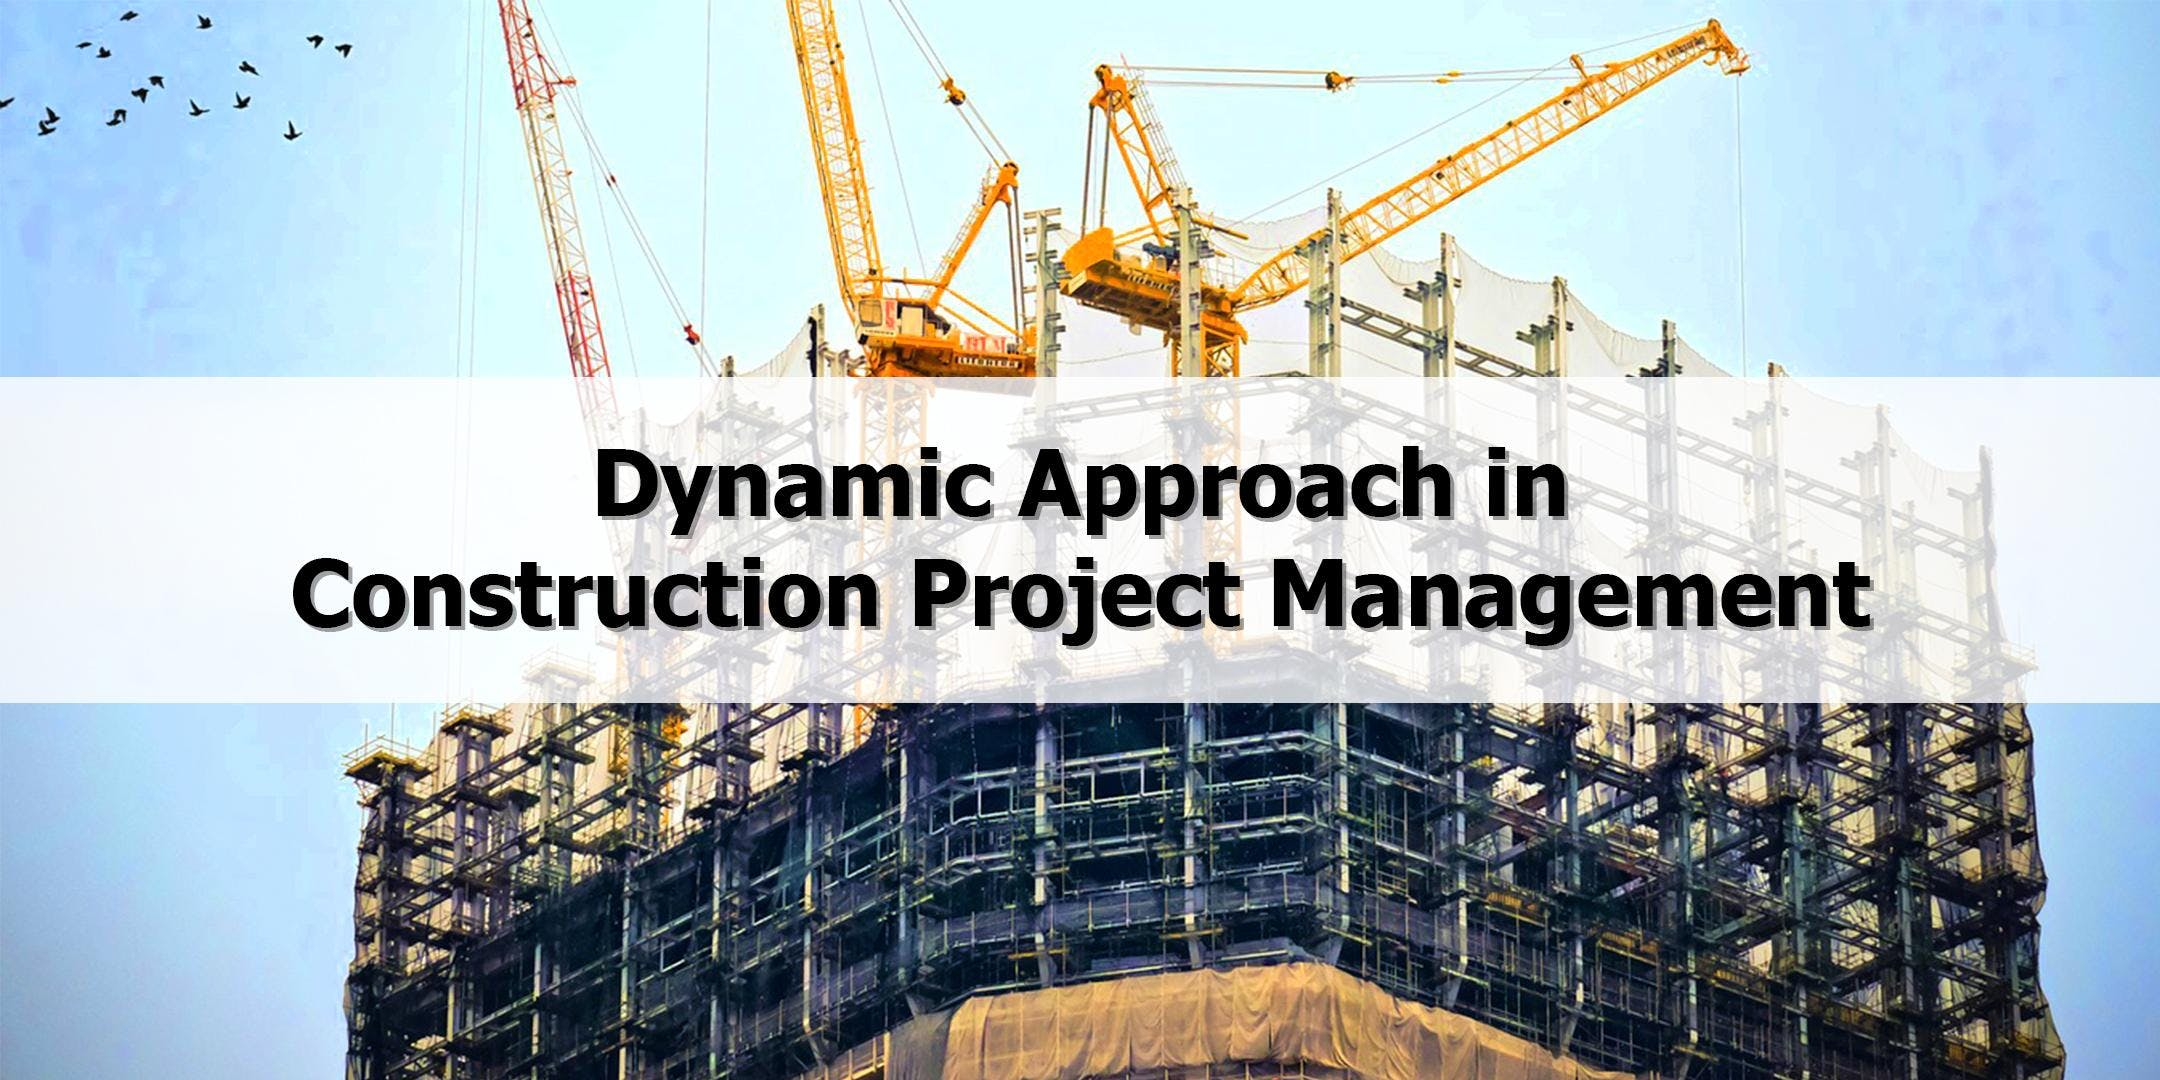 Dynamic Approach in Construction Project Management - SkillsFuture Claimable